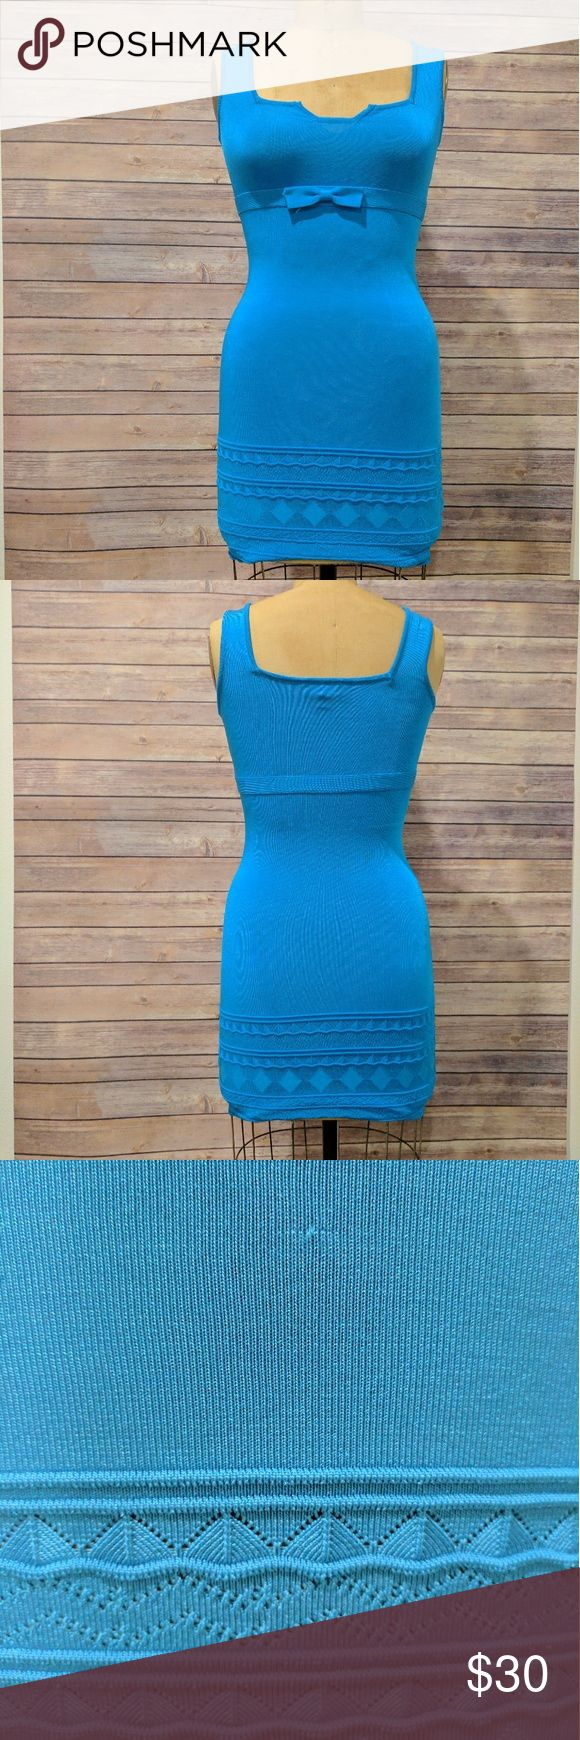 Bebe bandage dress Gently wore, great condition. Blue bandage dress from Bebe. Cute ribbon on the front and beautiful bottom design. One minor snags on the lower front(see pic3) otherwise perfect condition. Size small. Perfect color for summer! bebe Dresses Mini